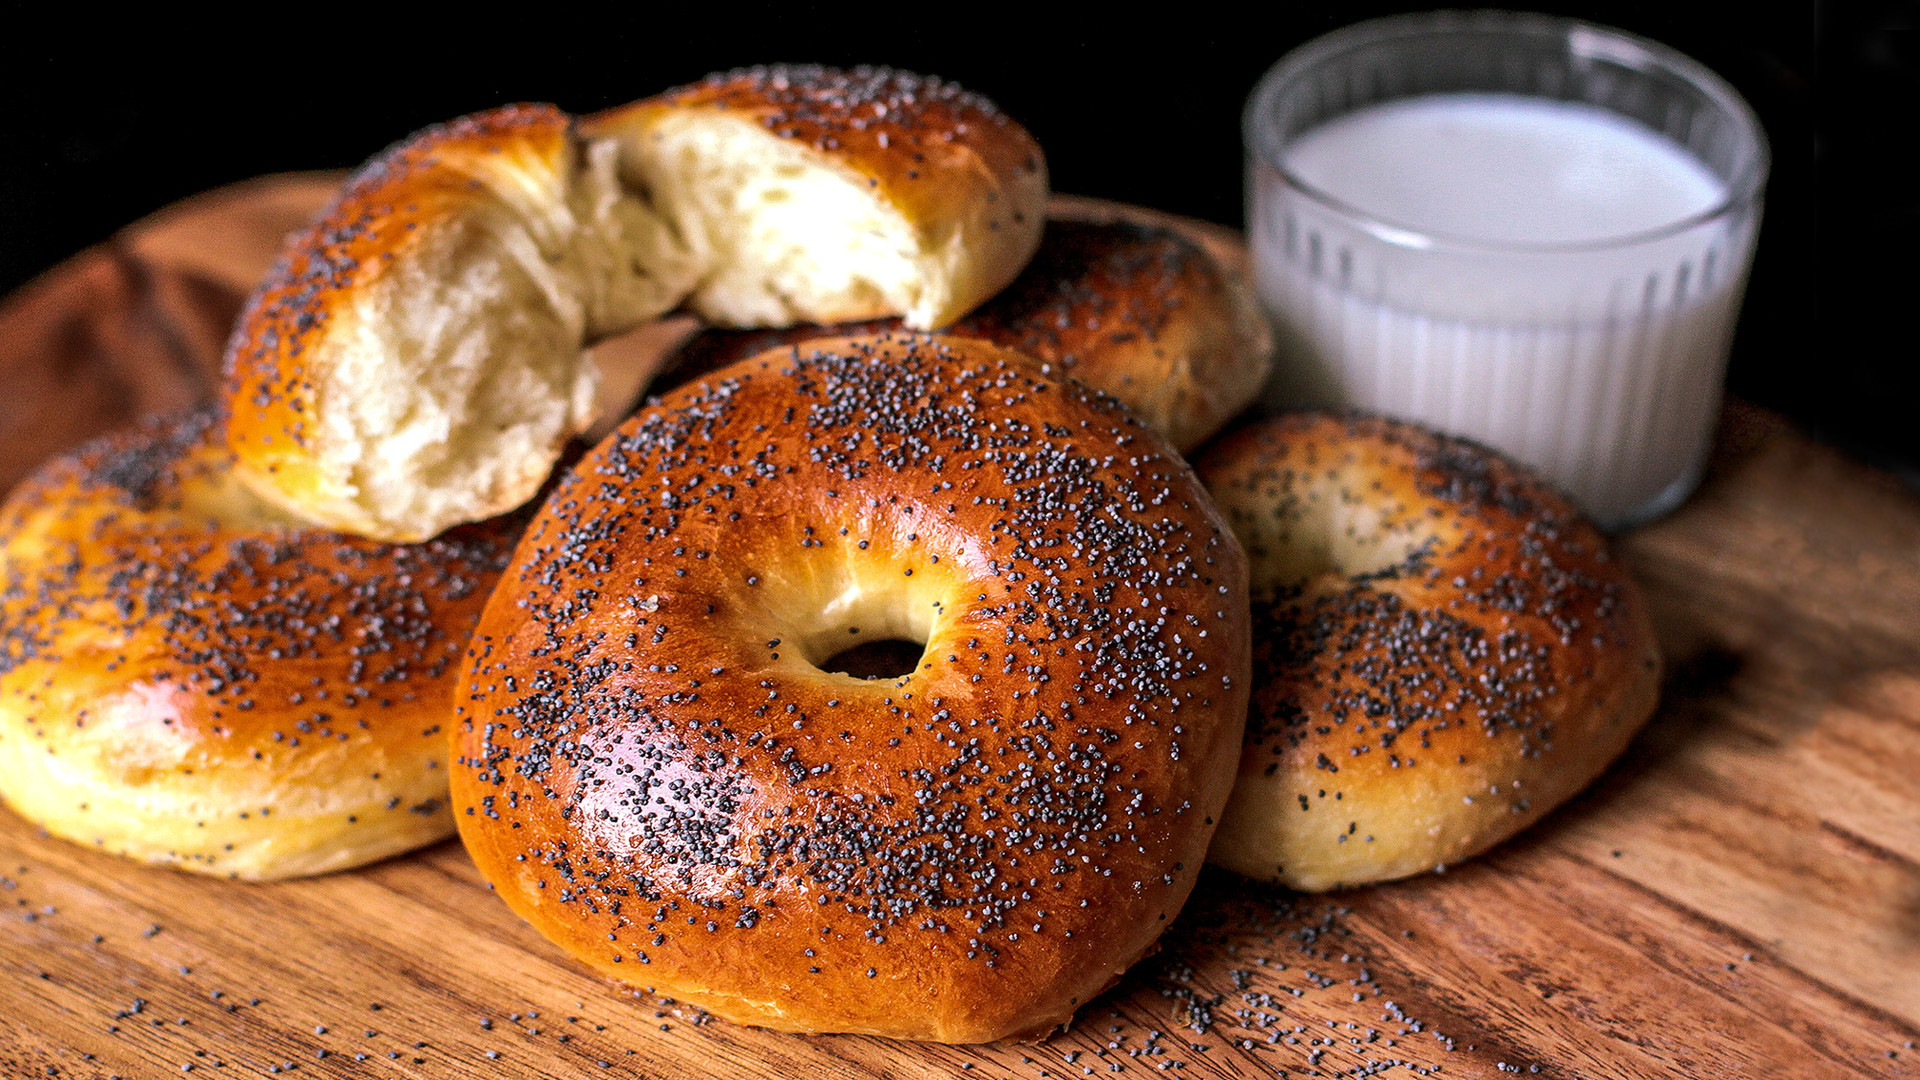 Bubliki are a close relative of the bagel.